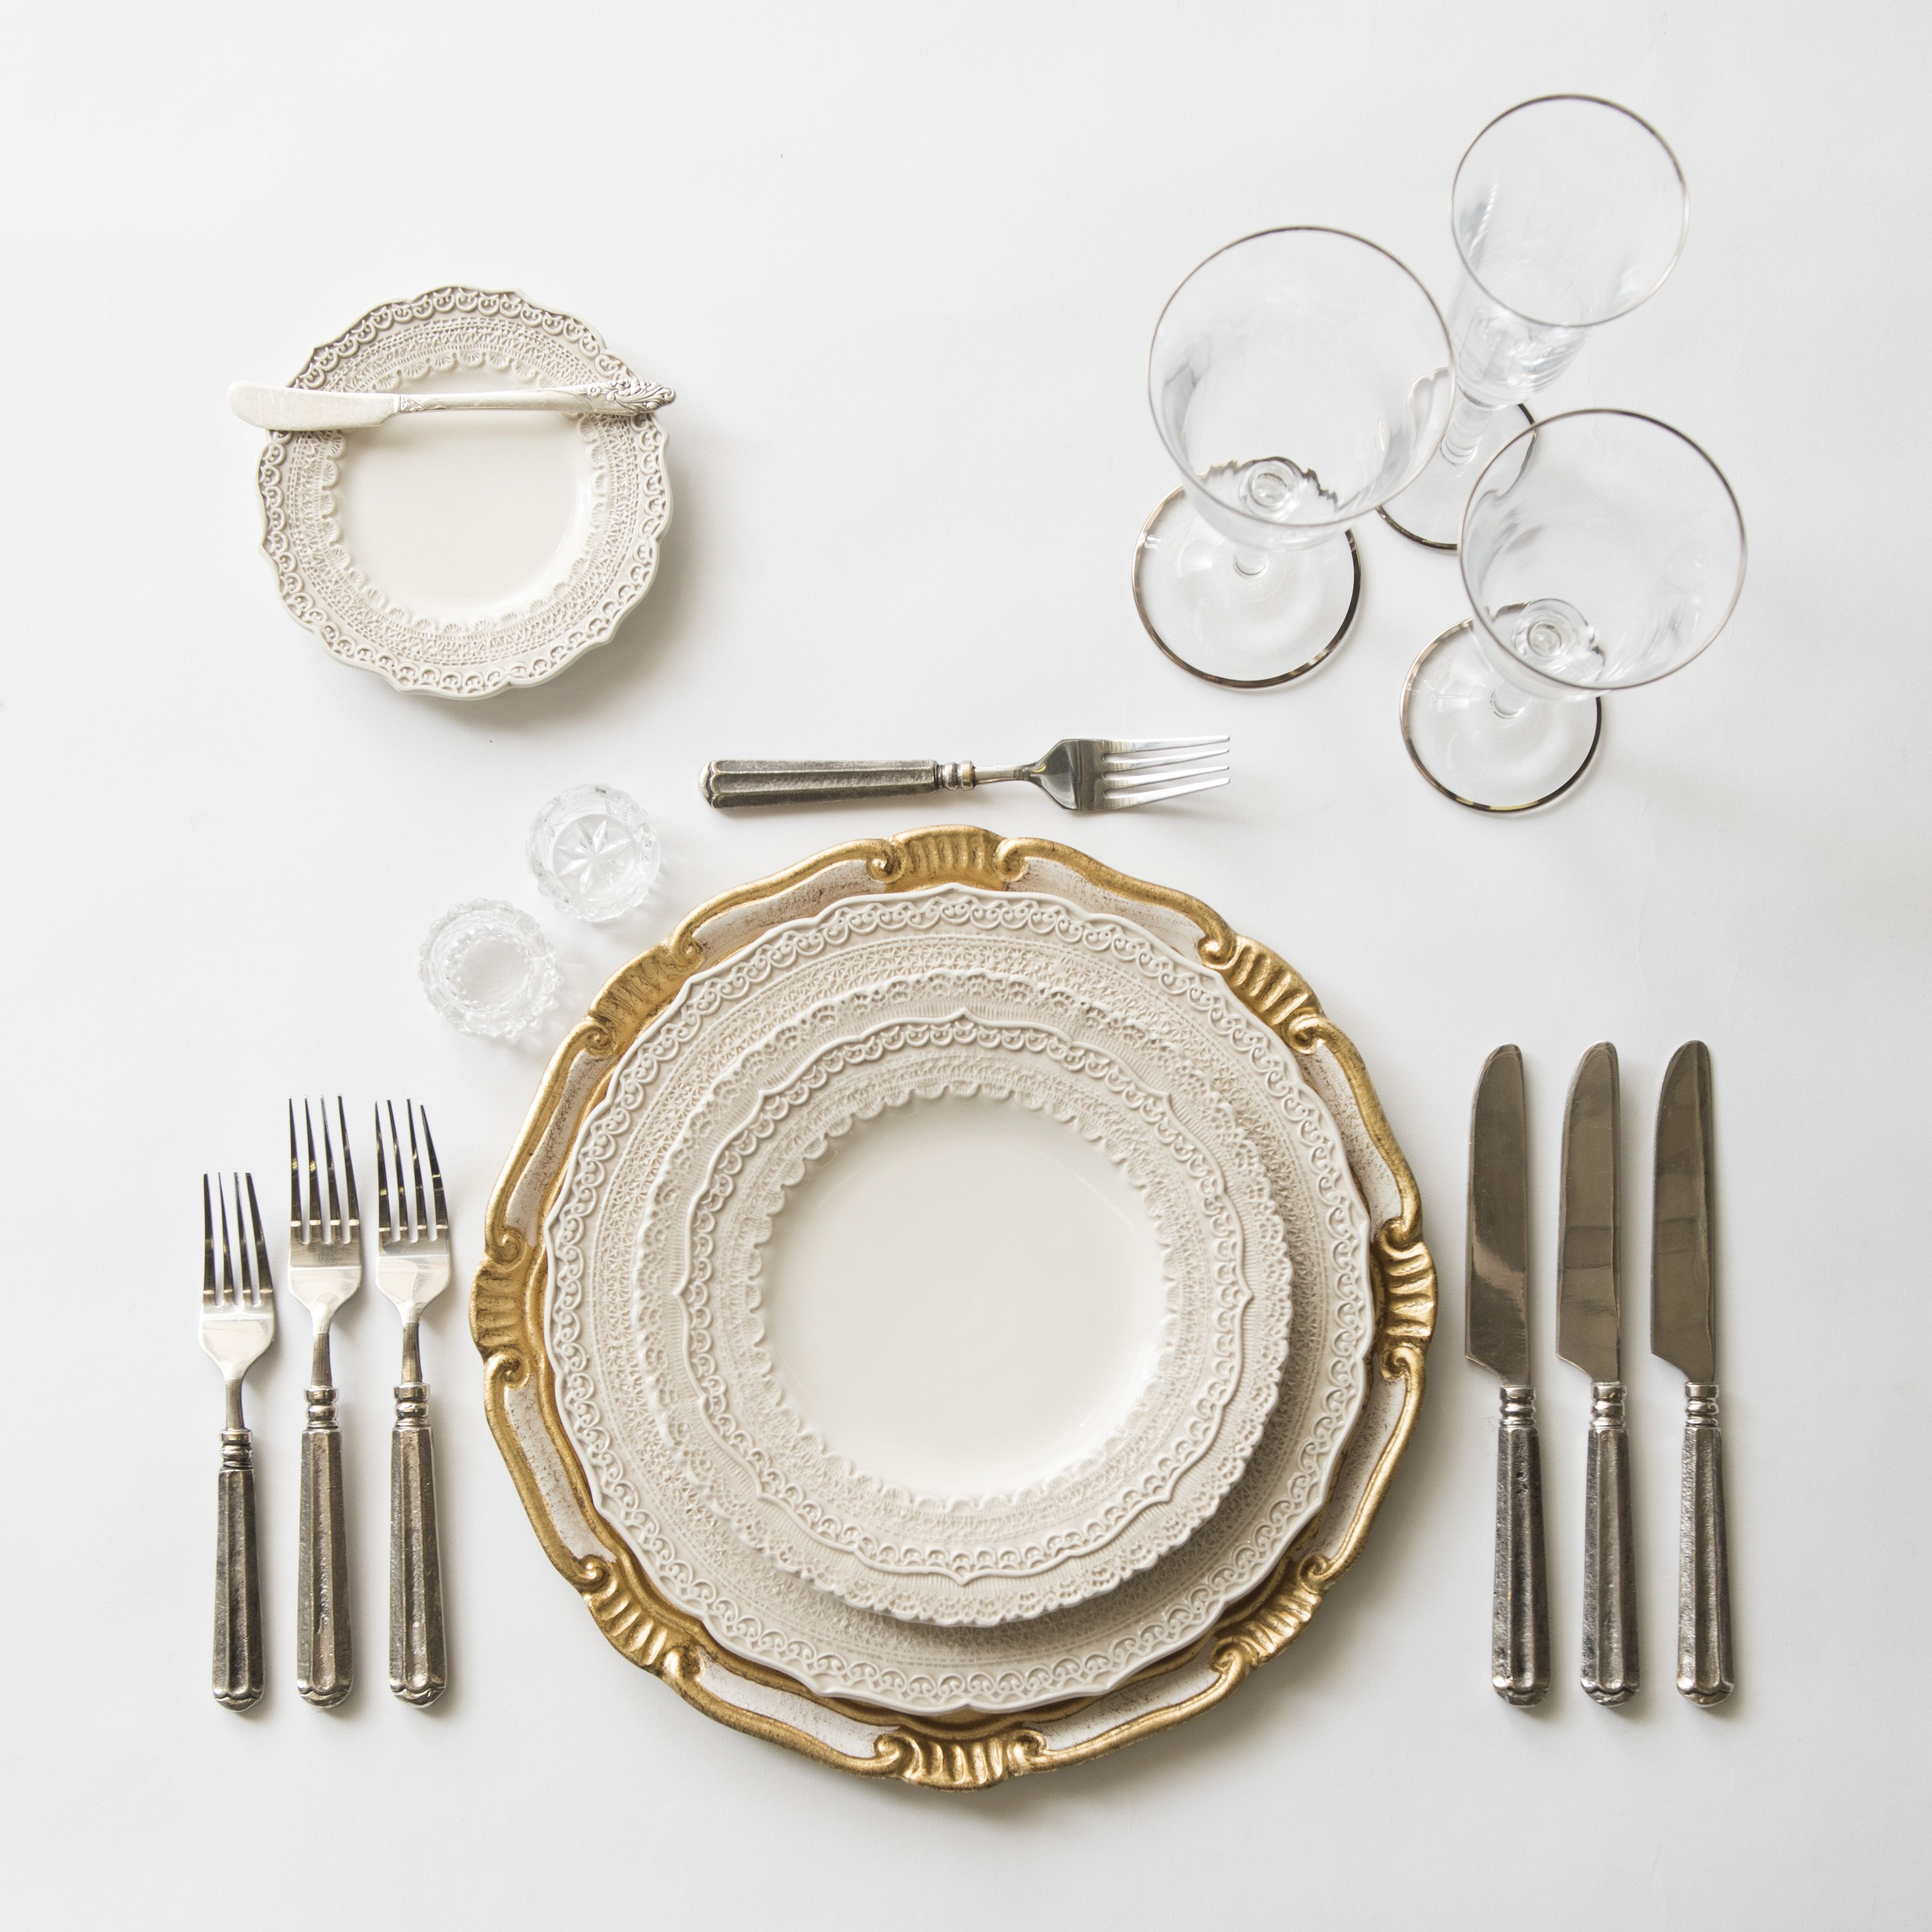 White \u0026 gold Florentine Charger + White Lace Dinnerware + Tuscan Flatware in Pewter + Crystal  sc 1 st  Pinterest & White \u0026 gold Florentine Charger + White Lace Dinnerware + Tuscan ...